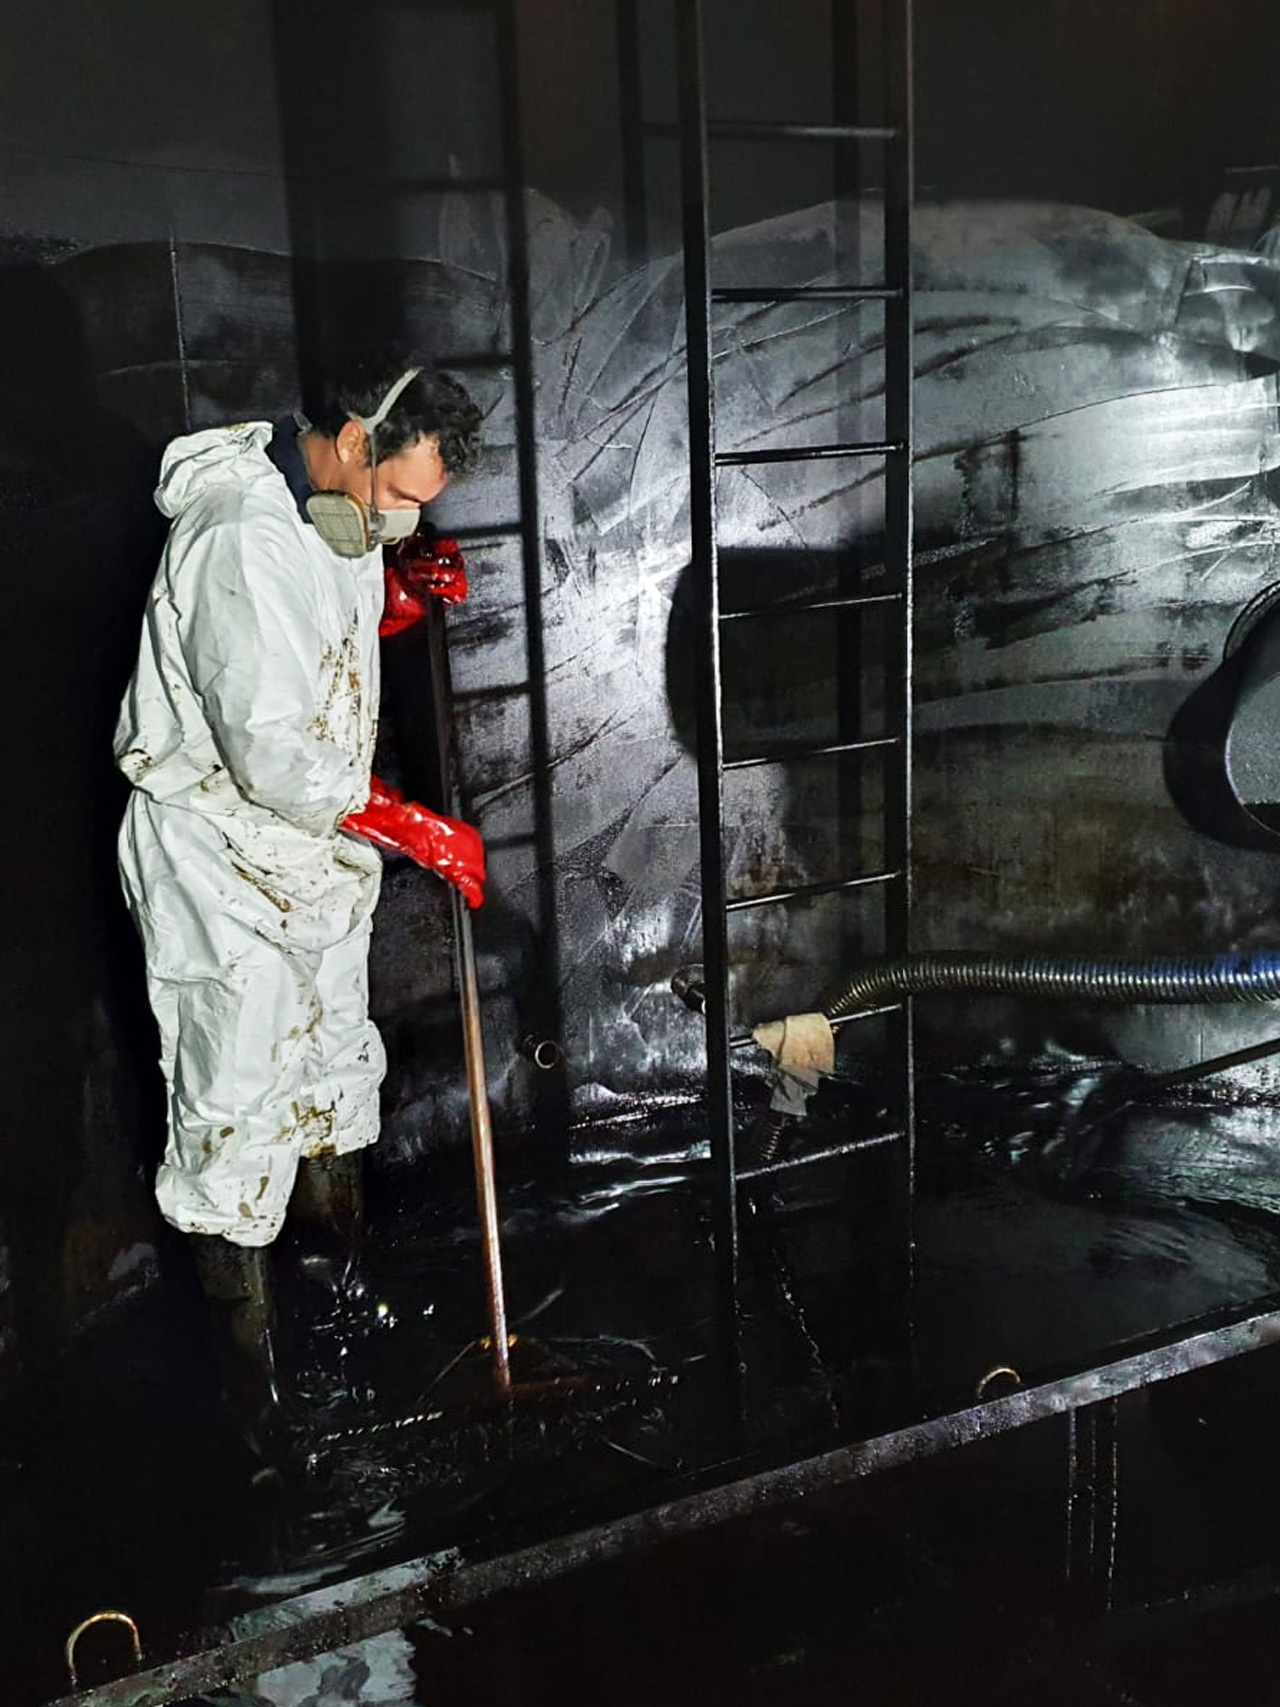 Cleaning a fuel tank at a hospital